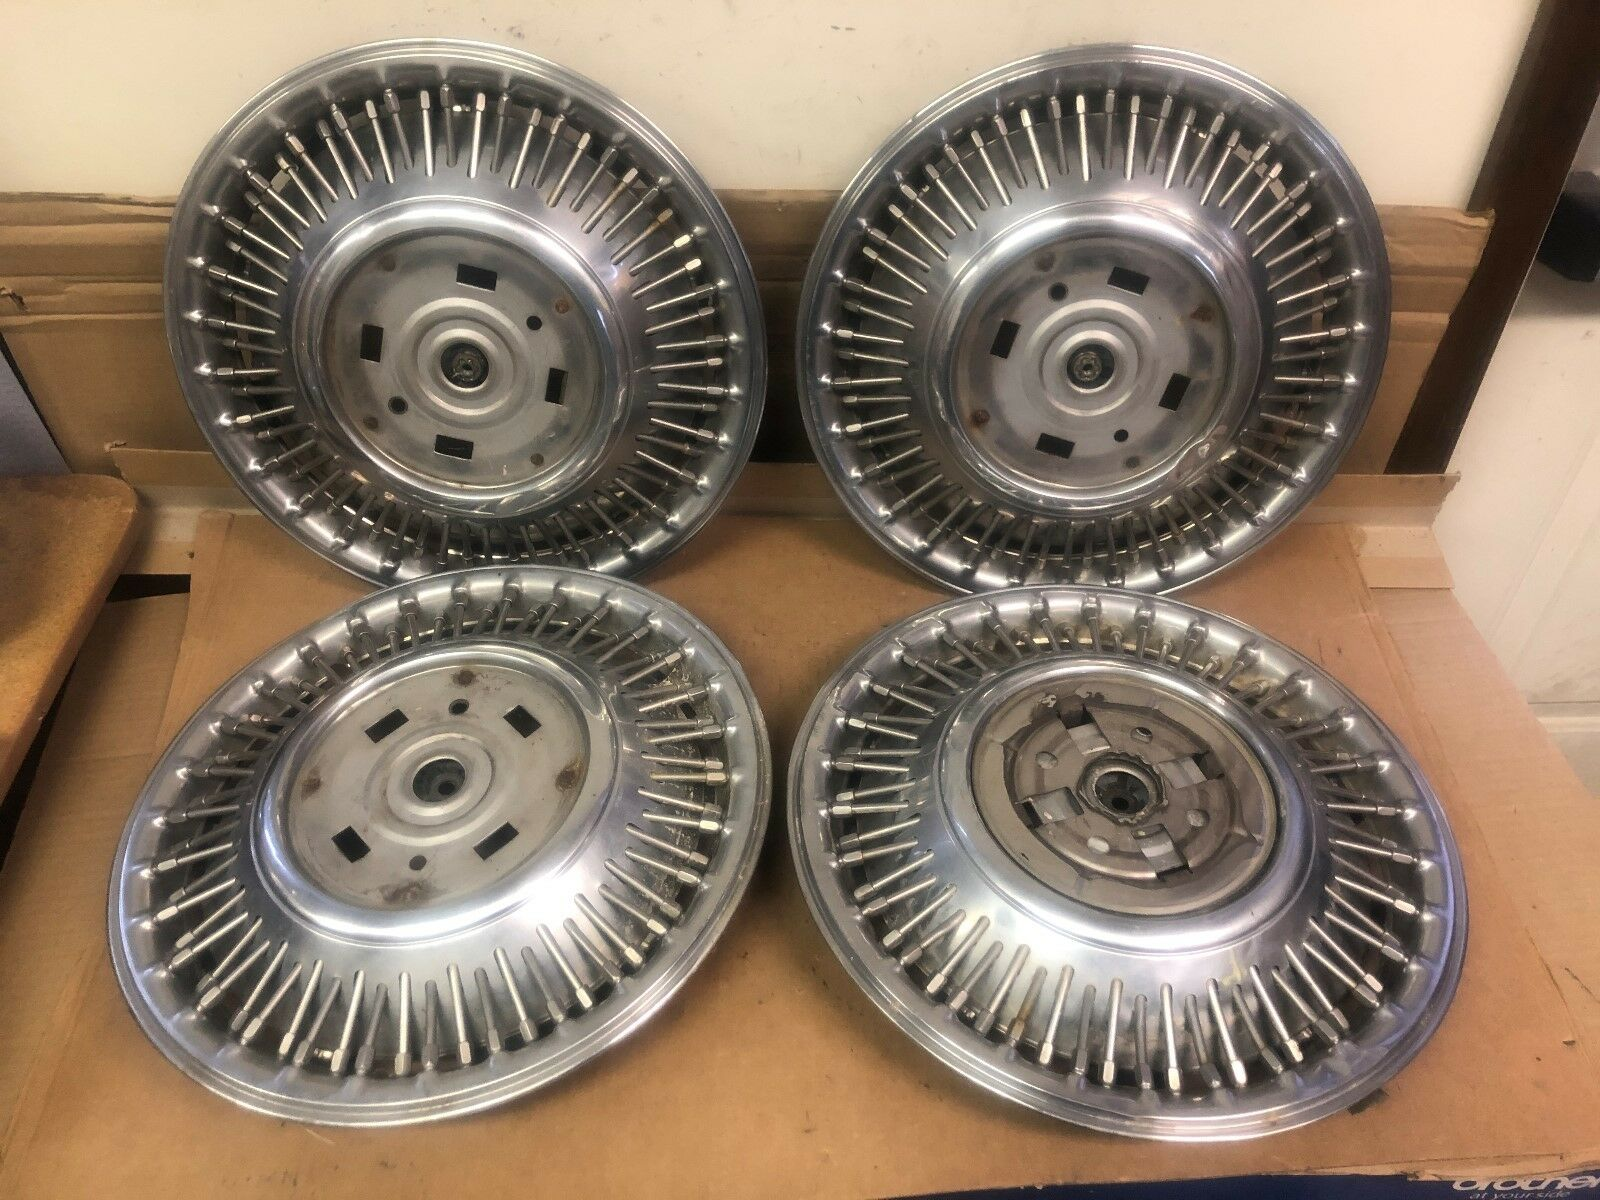 Used 1980 Chrysler New Yorker Hub Caps for Sale